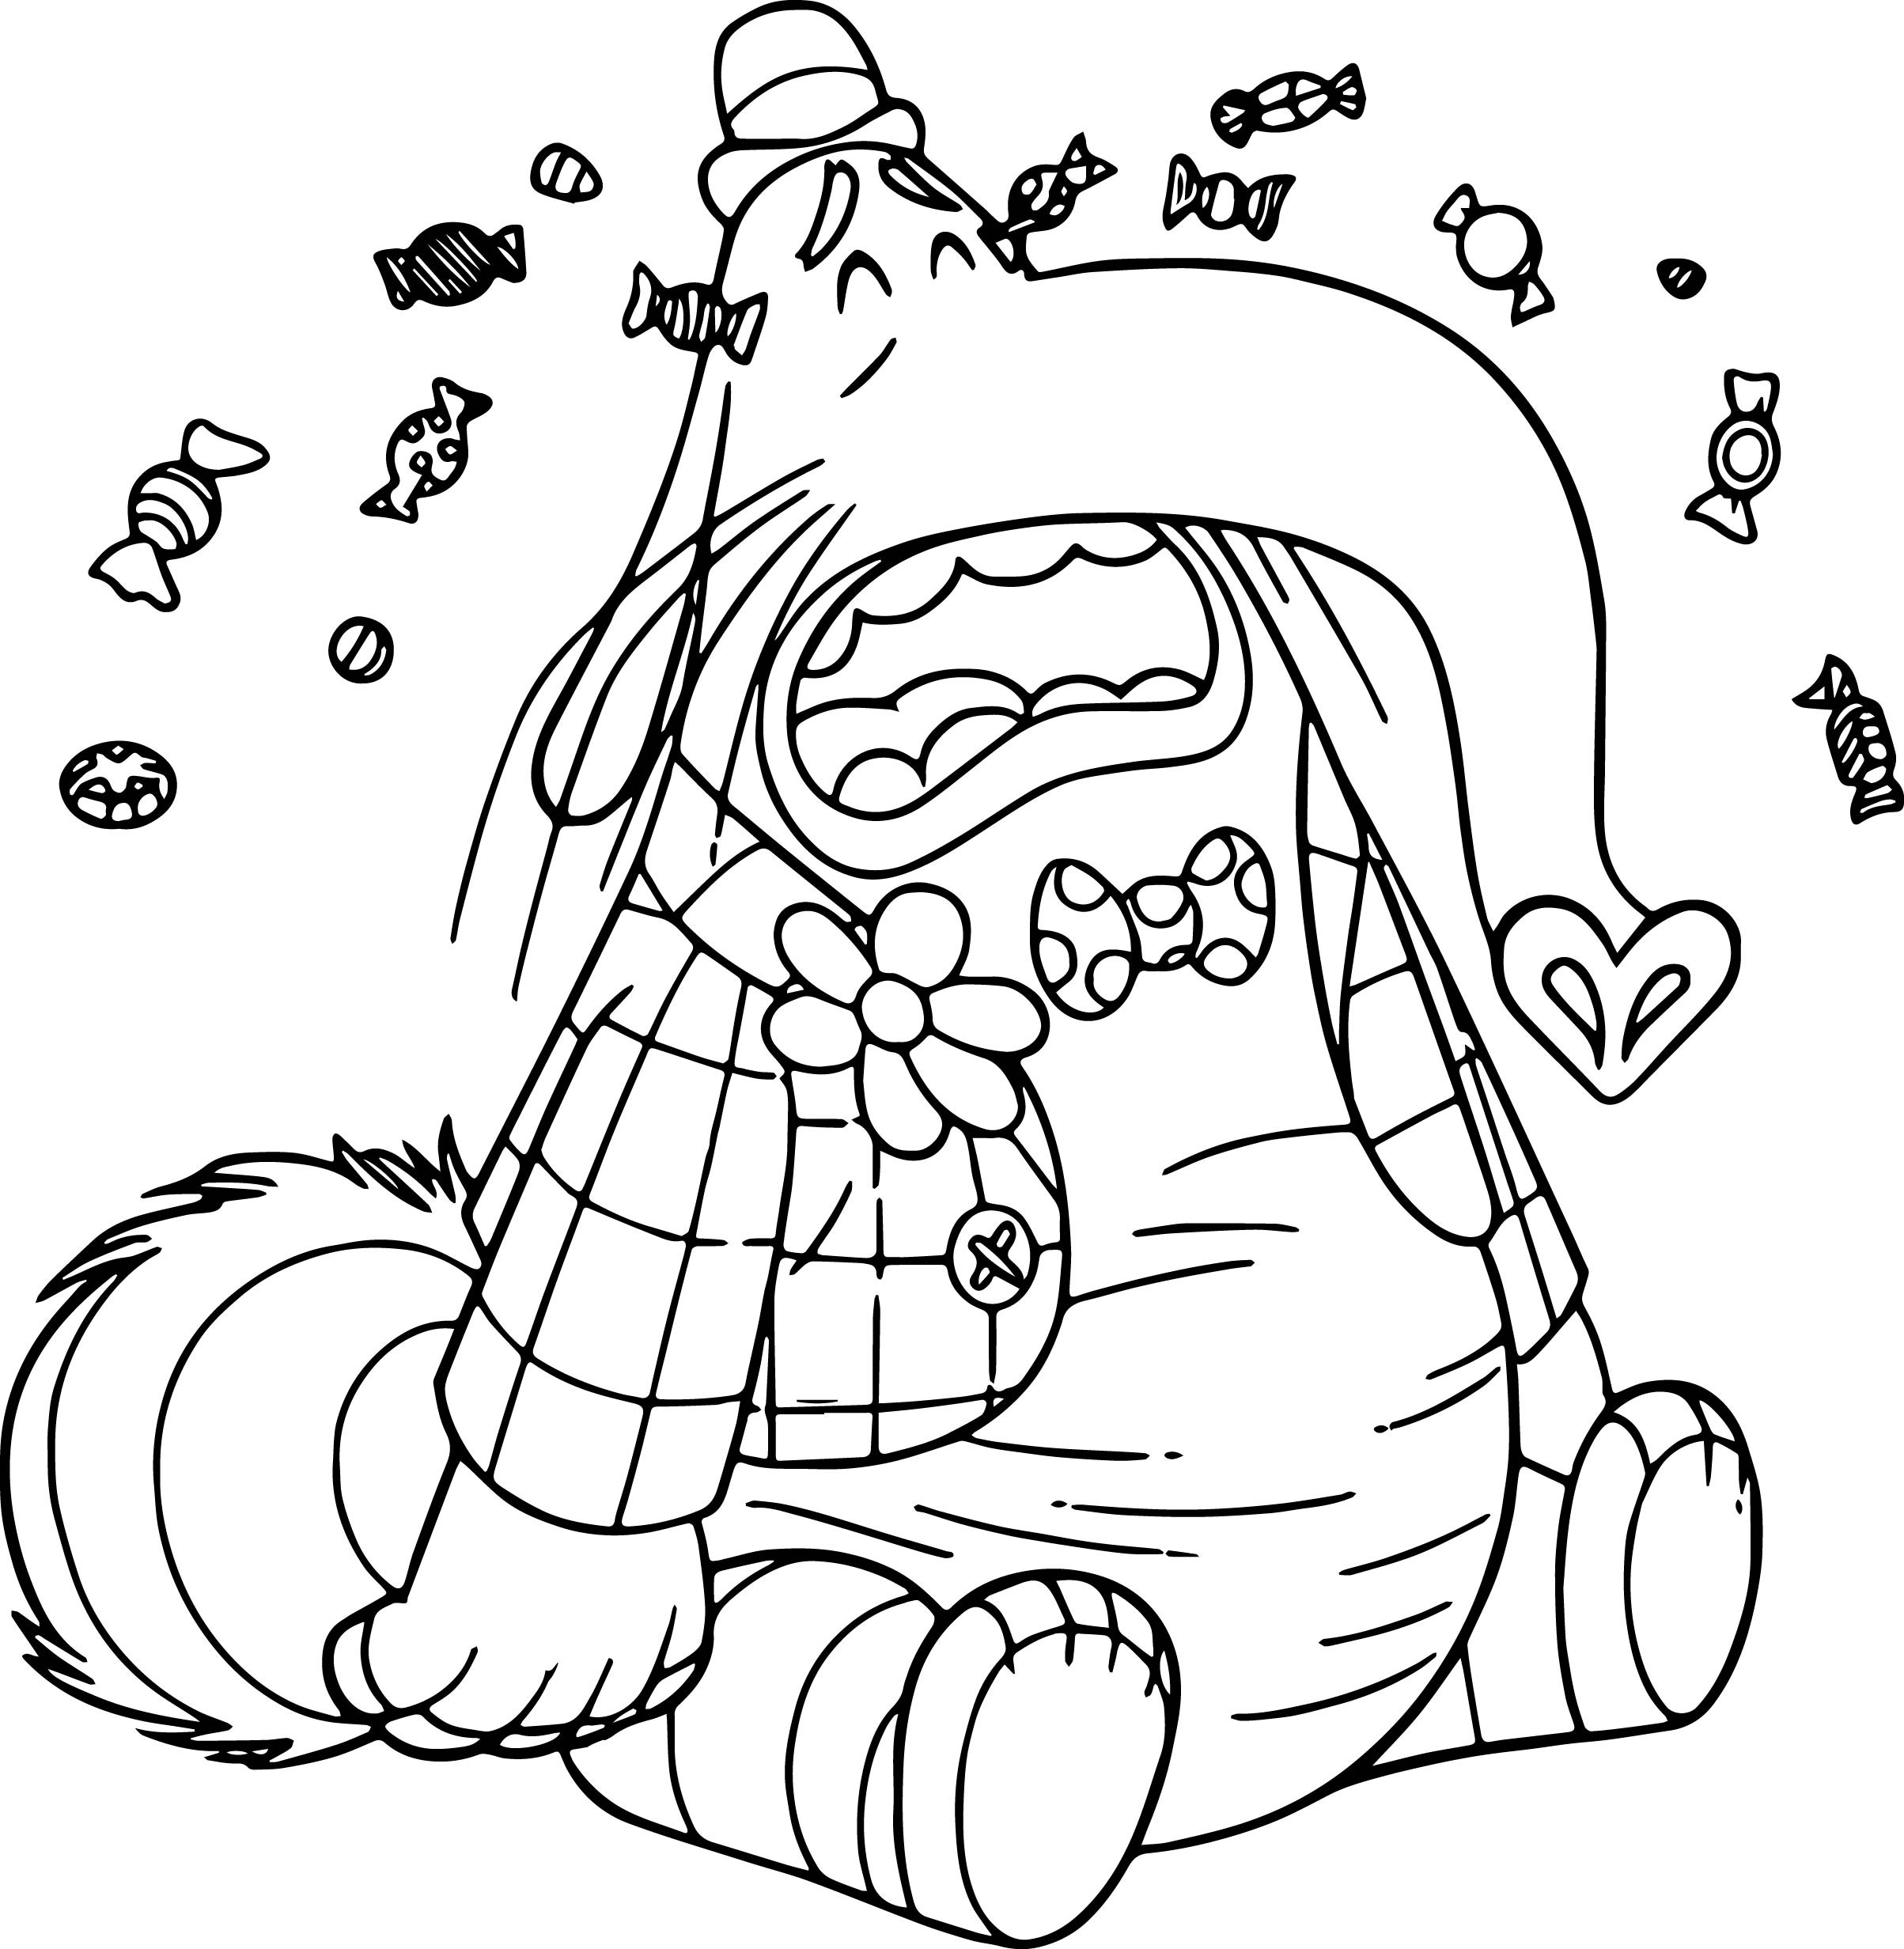 2407x2464 Free Coloring Pages Inside Out Movie Best Of Bingbong Cry